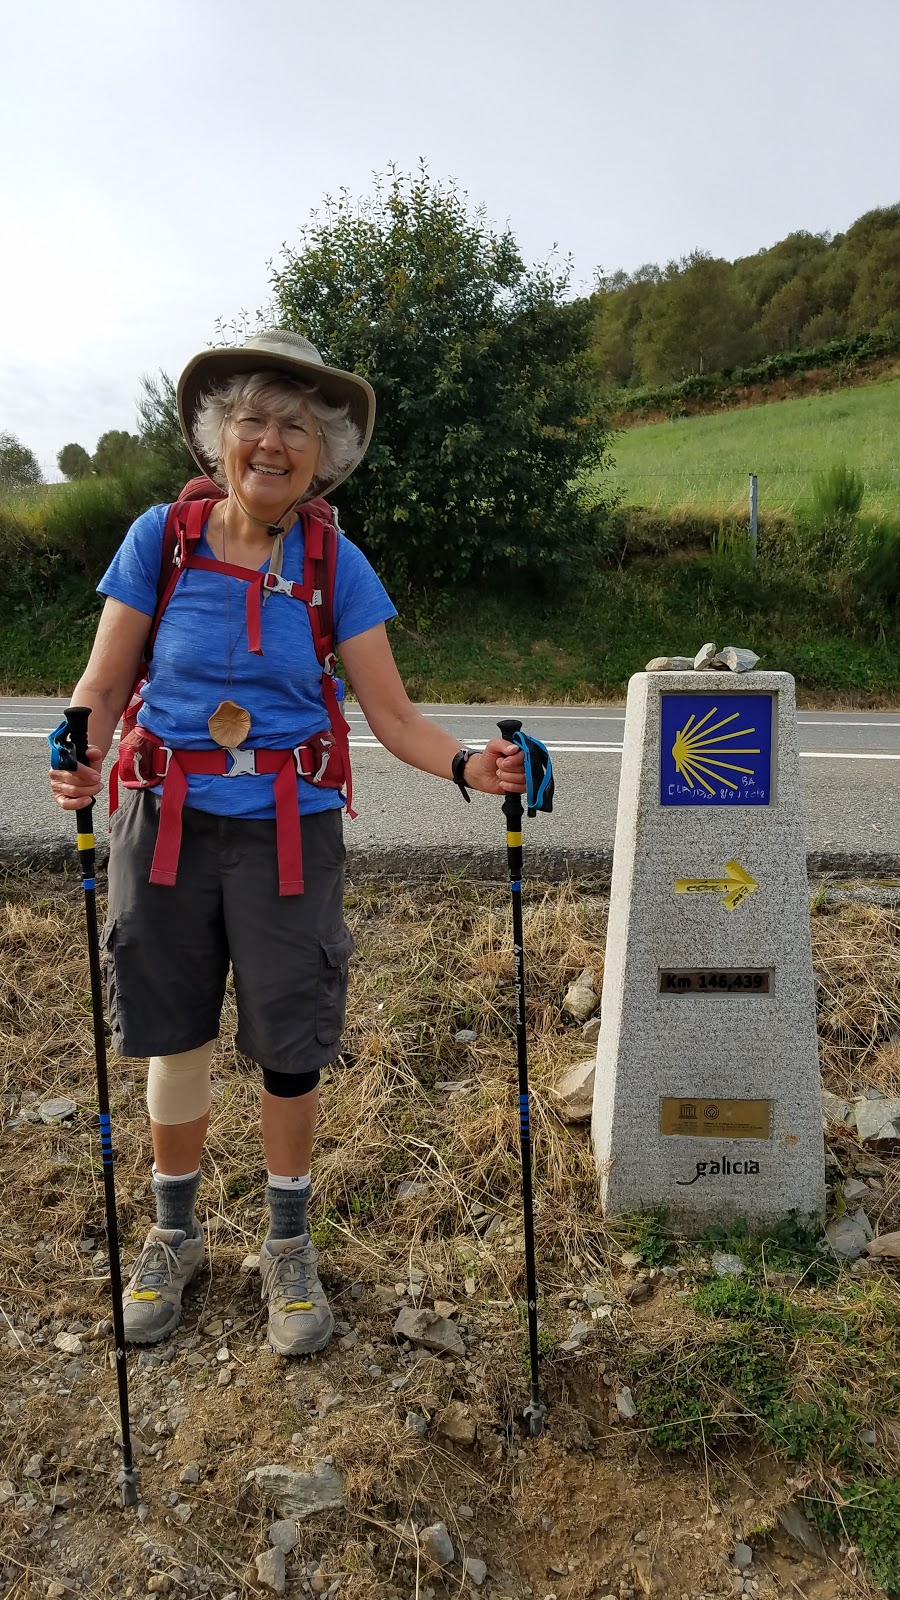 Meet Danny from New Jersey. This young lady is 70 and walked from Saint-Jean-Pied-de-Port, France, nearly 475 miles before this photo was taken.